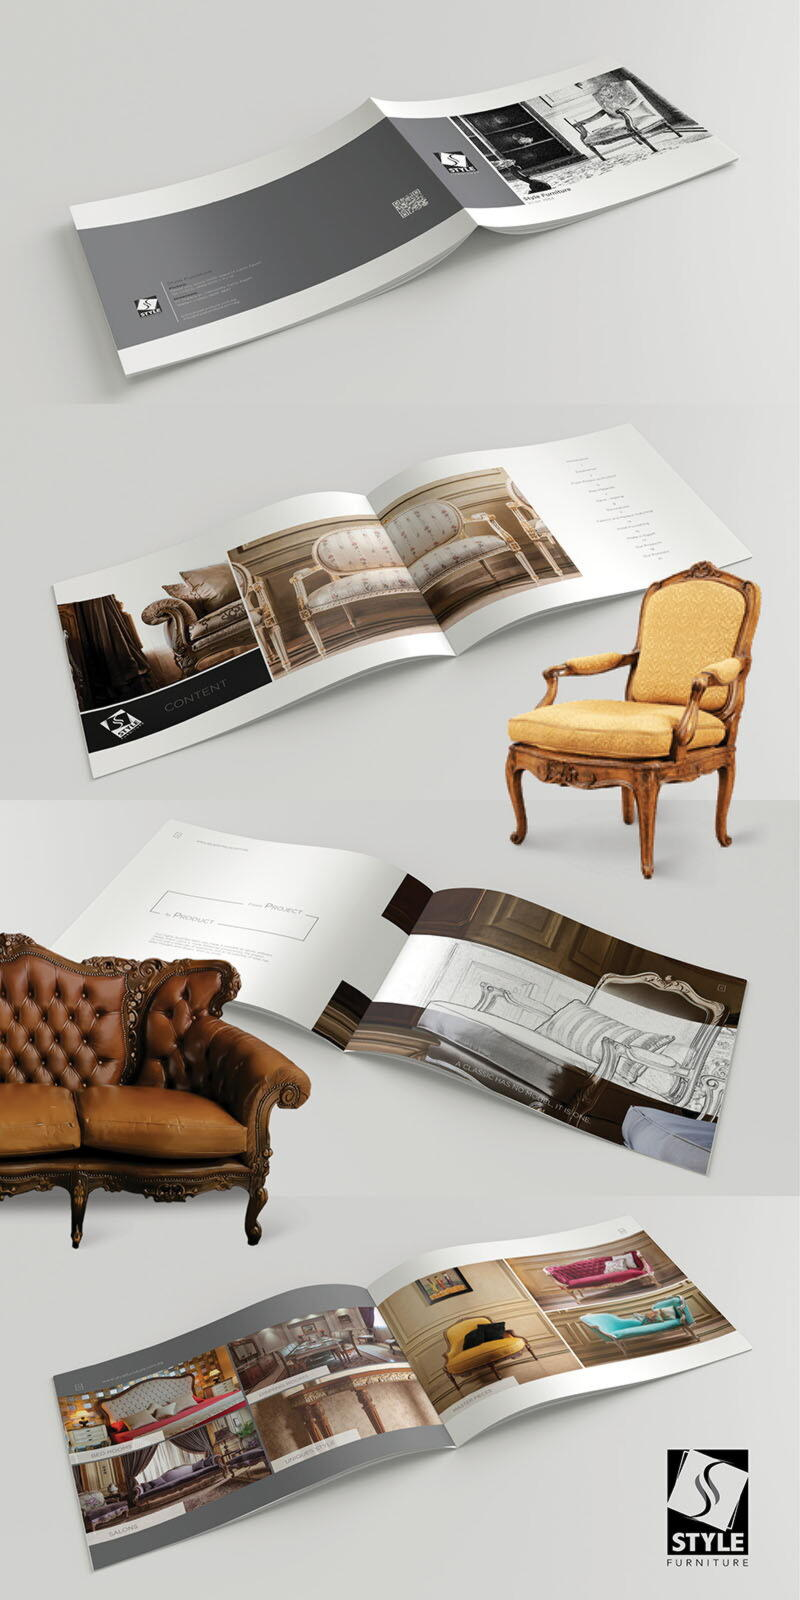 Style Furniture Catalouge